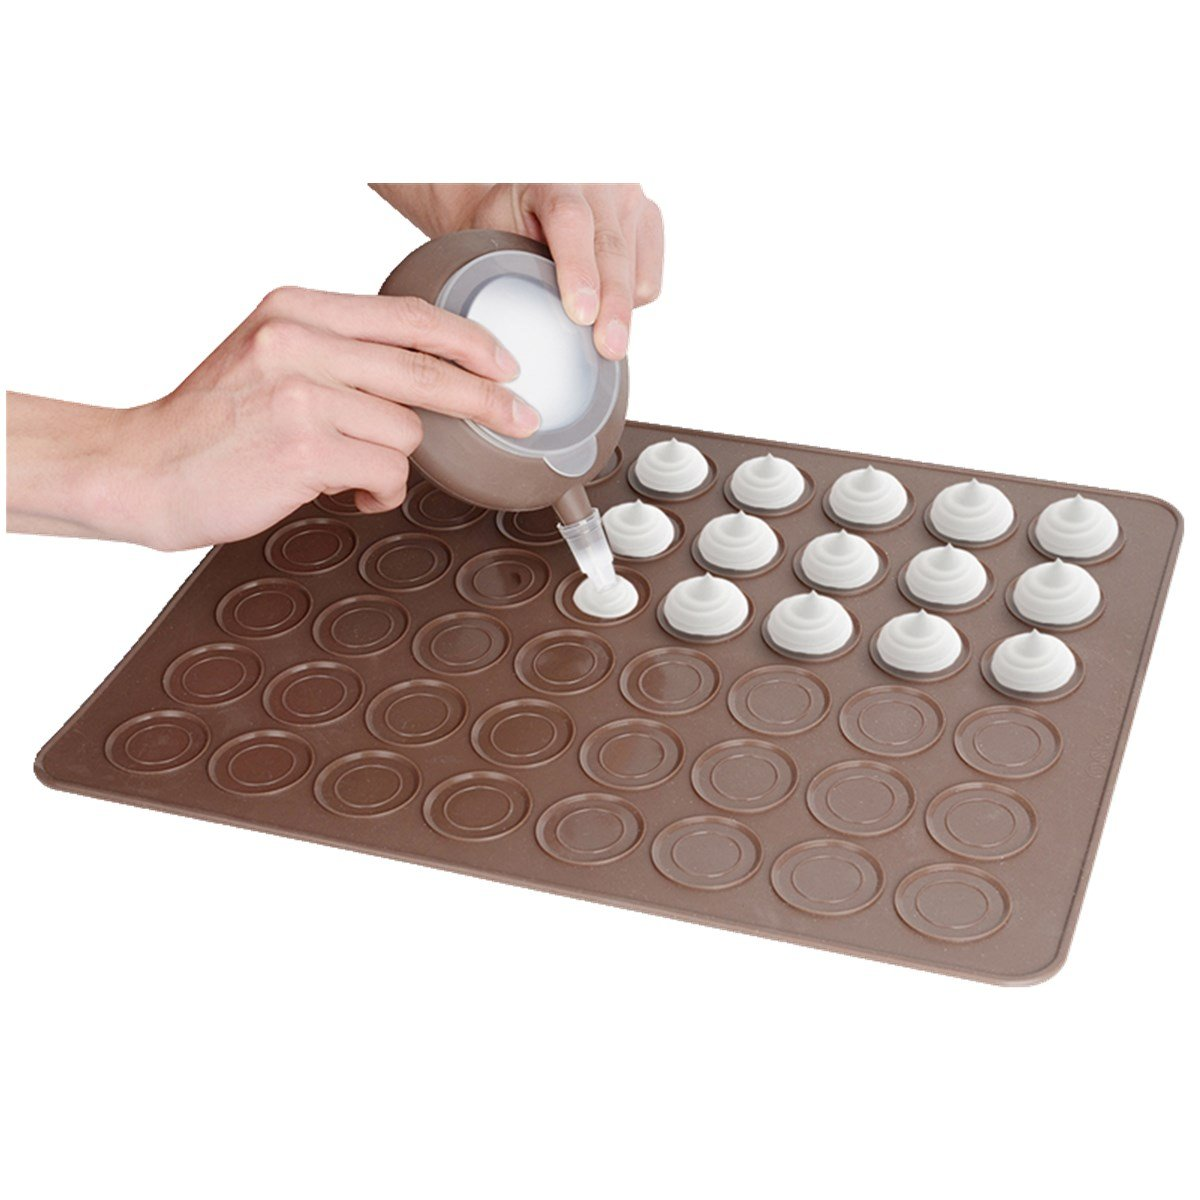 Vigorlife Macaron Making Set 48 - Capacity Nonstick Macaron Silicone Baking Mats Cakes Mould Includes Trays Bakeware Decorating Pen Icing Tips and 4 Nozzles-cup cake muffin pastry cream icing